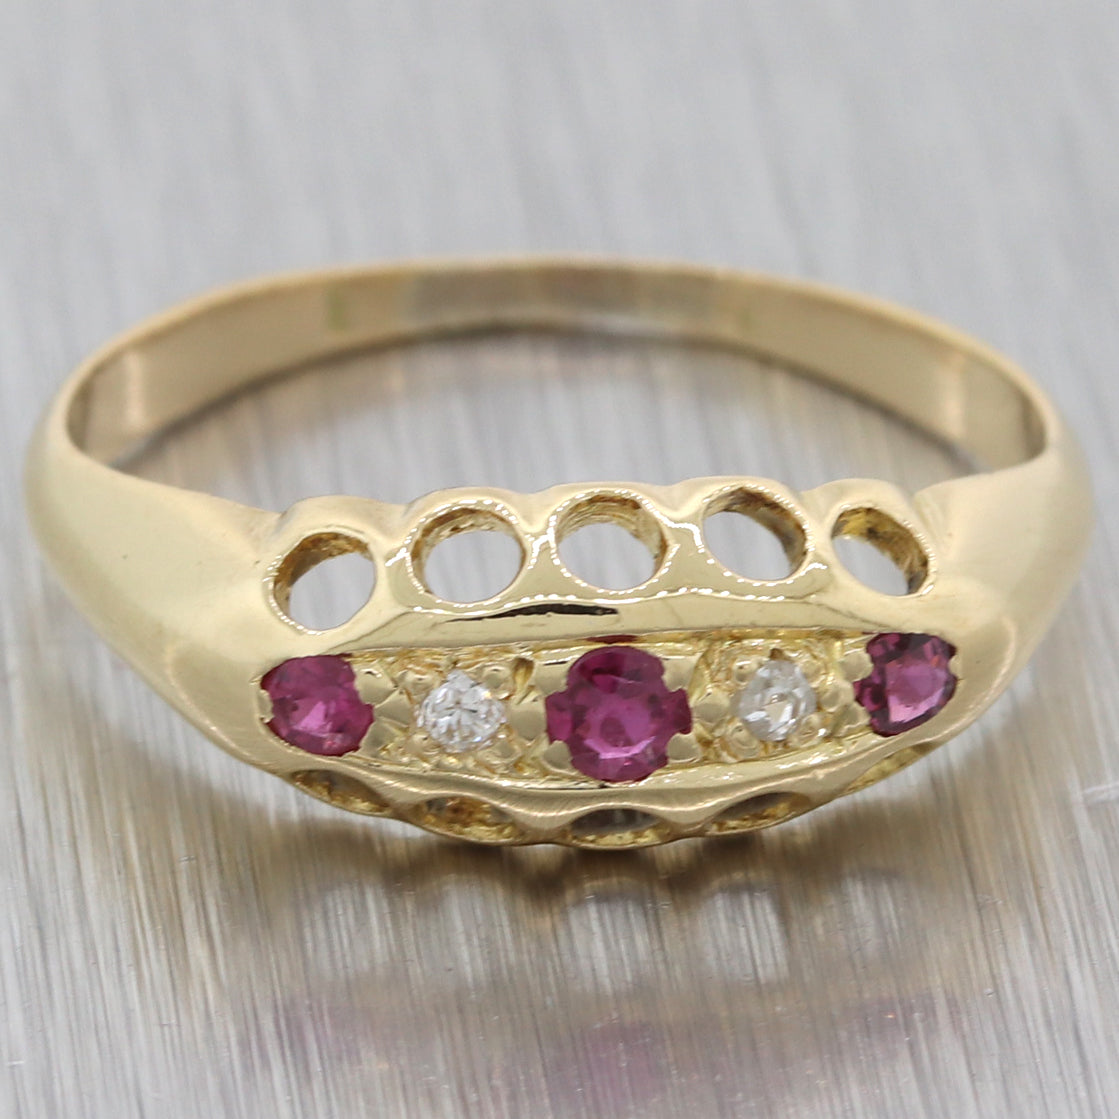 1880s Antique Victorian Estate 14k Yellow Gold Ruby Diamond Band Ring Y8